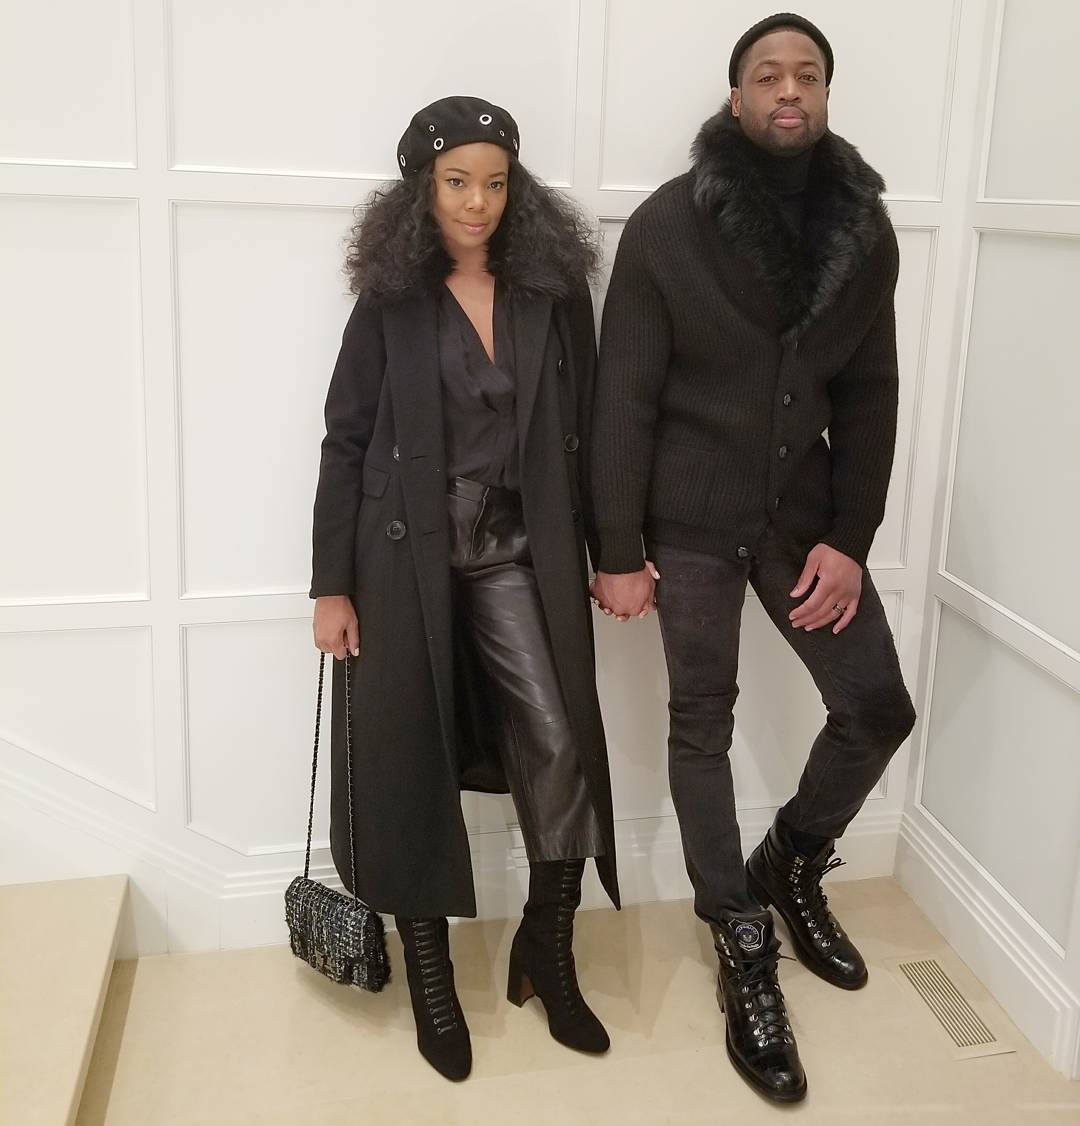 Gabrielle Union and Dwayne Wade serving couple goals in